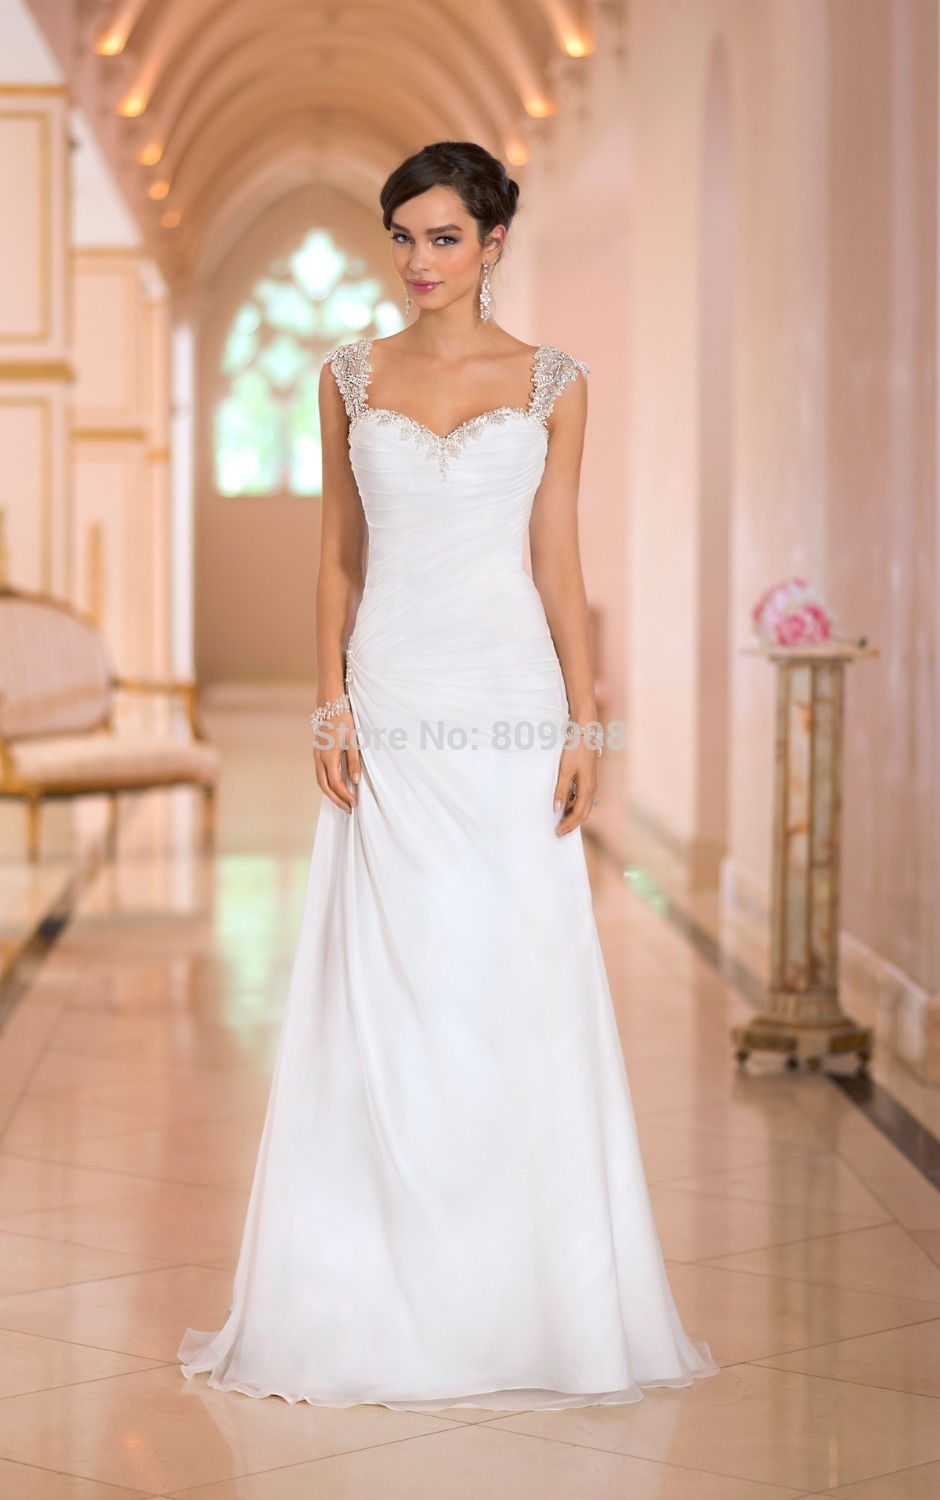 Beach wedding dresses ruffles sweetheart neckline applique beaded beach wedding dresses ruffles sweetheart neckline applique beaded straps backless chiffon a line 6363mia aniaia junglespirit Choice Image